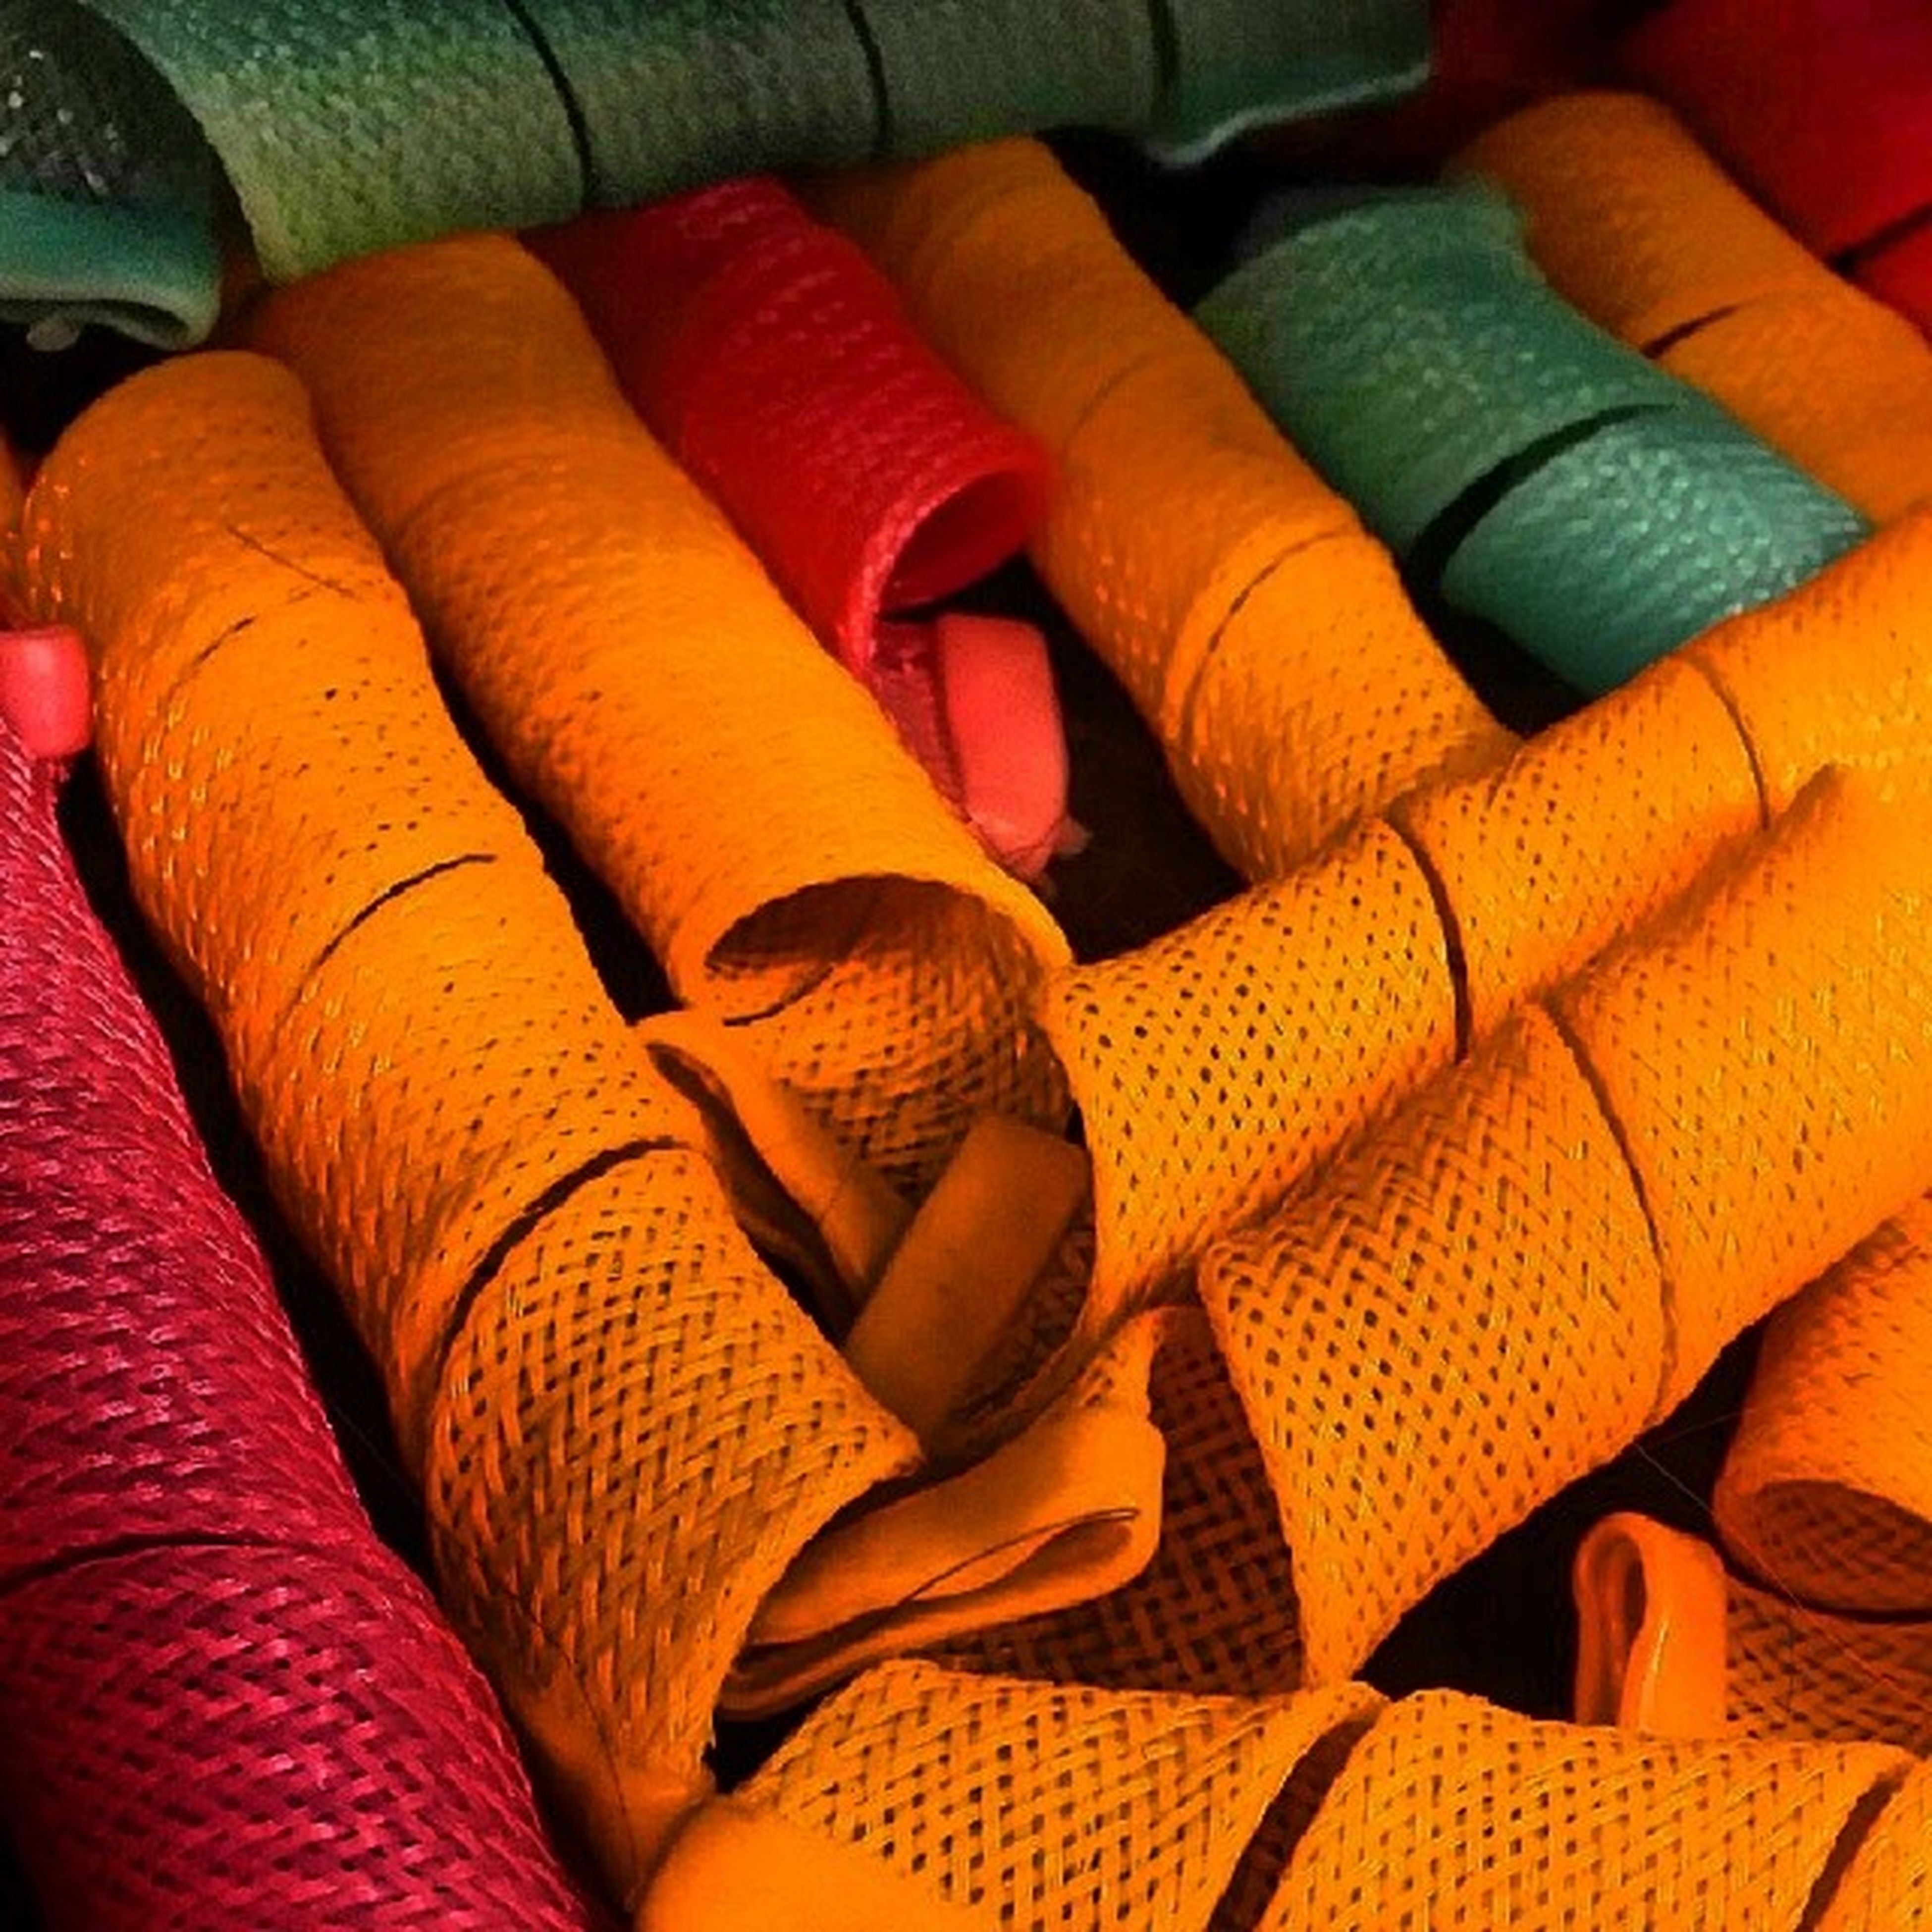 indoors, textile, high angle view, fabric, close-up, person, low section, bed, part of, full frame, multi colored, backgrounds, relaxation, red, pattern, abundance, material